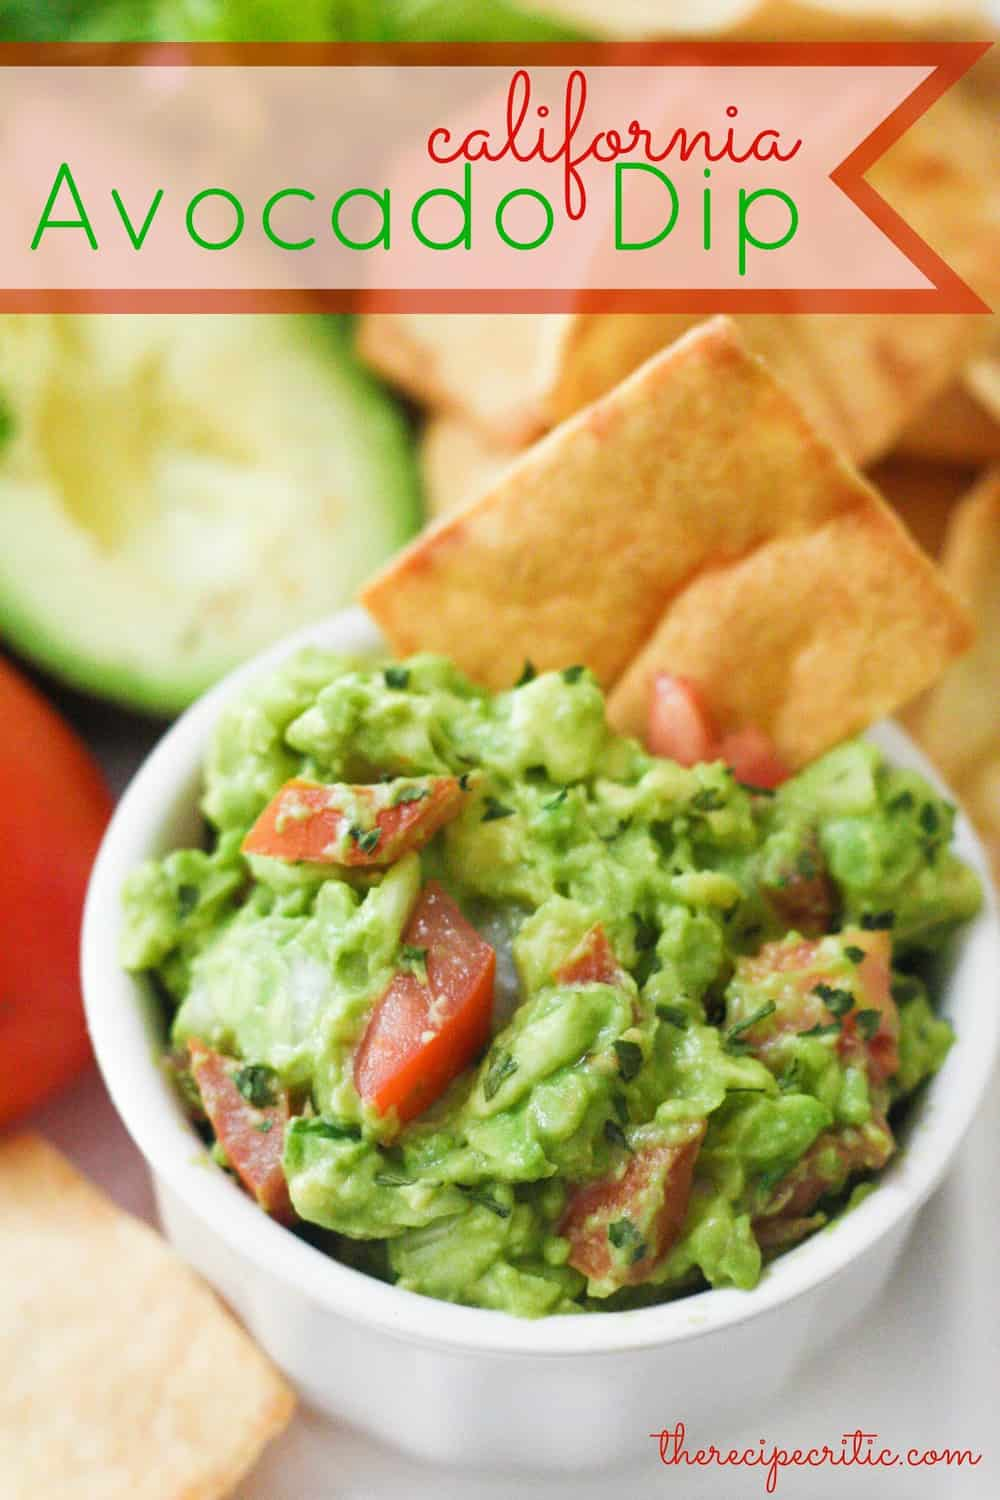 Avocado Dip Recipe California avocado dip the recipe critic